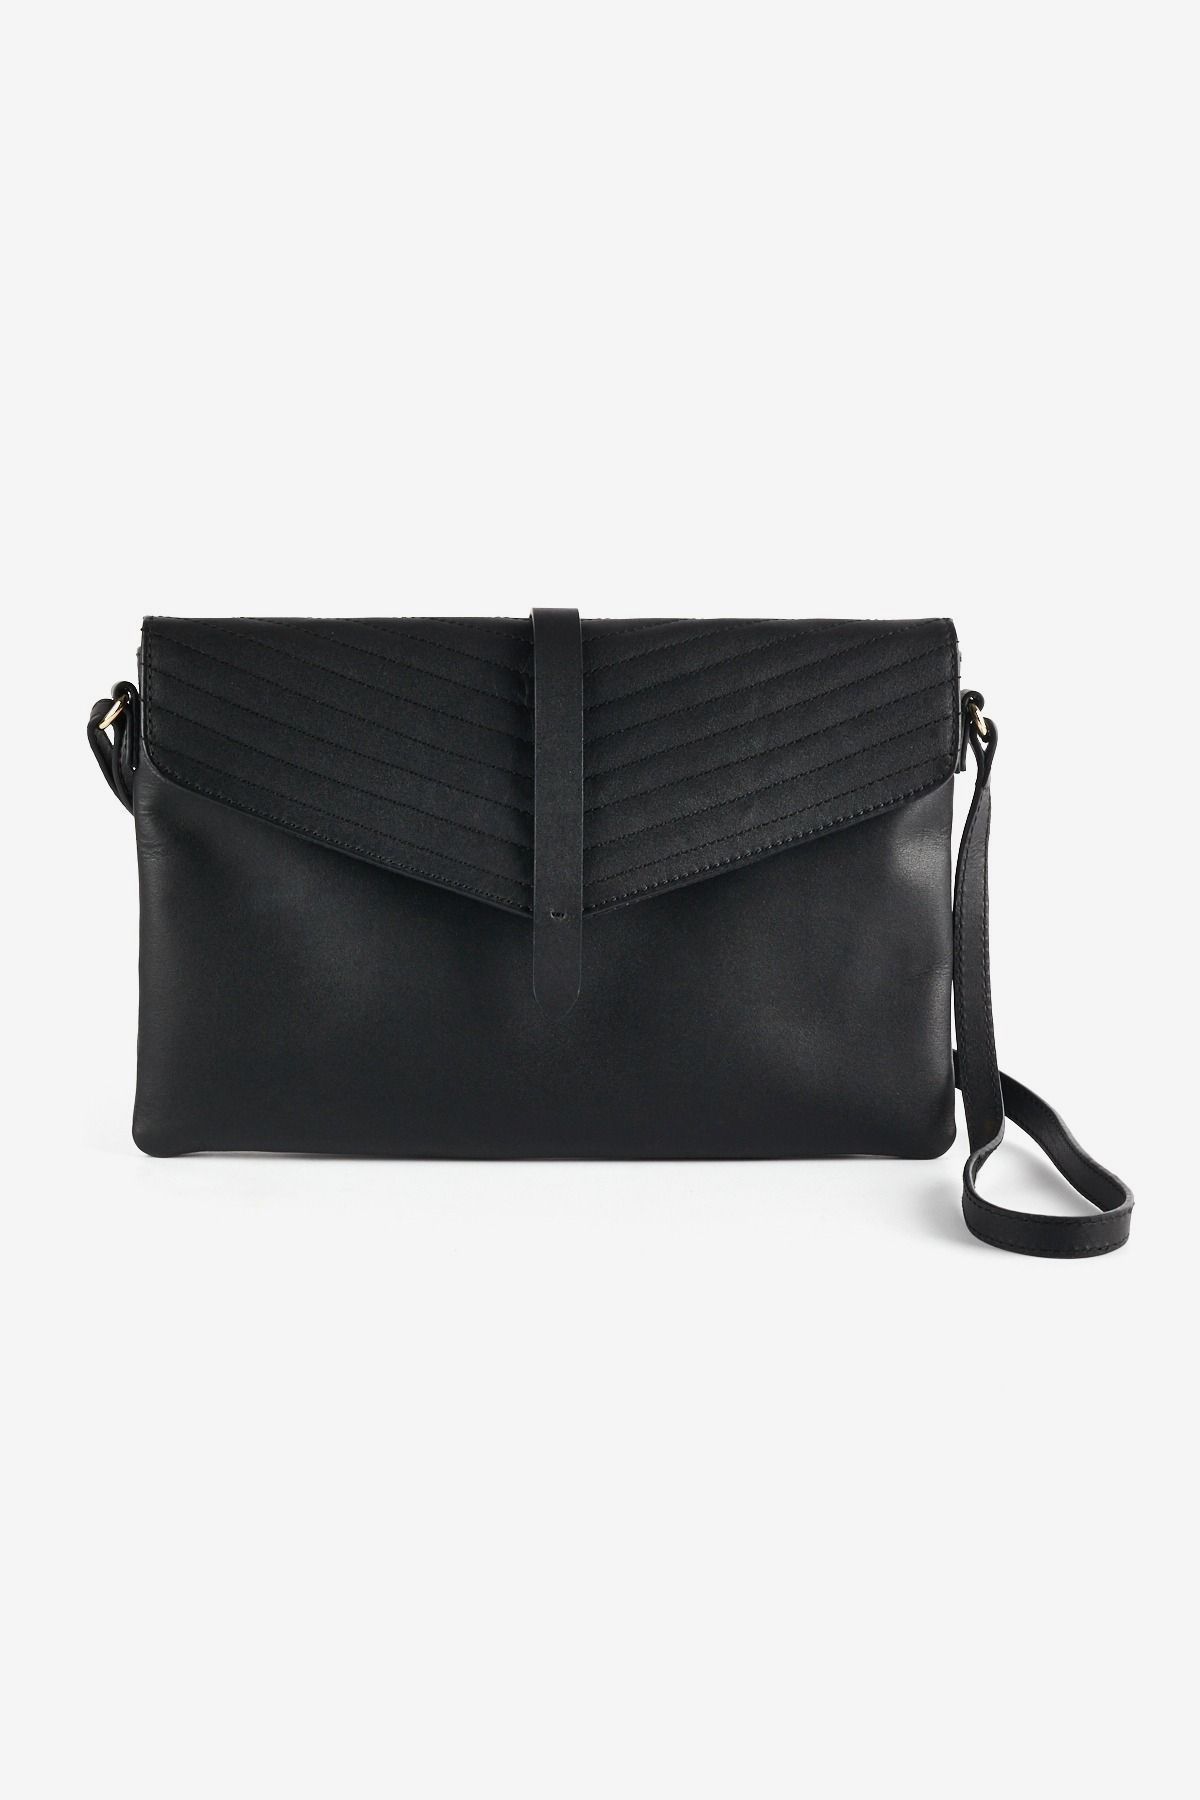 bde01274ef1c This genuine leather crossbody by Noir Luxe features a quilted flap detail  and adjustable strap.